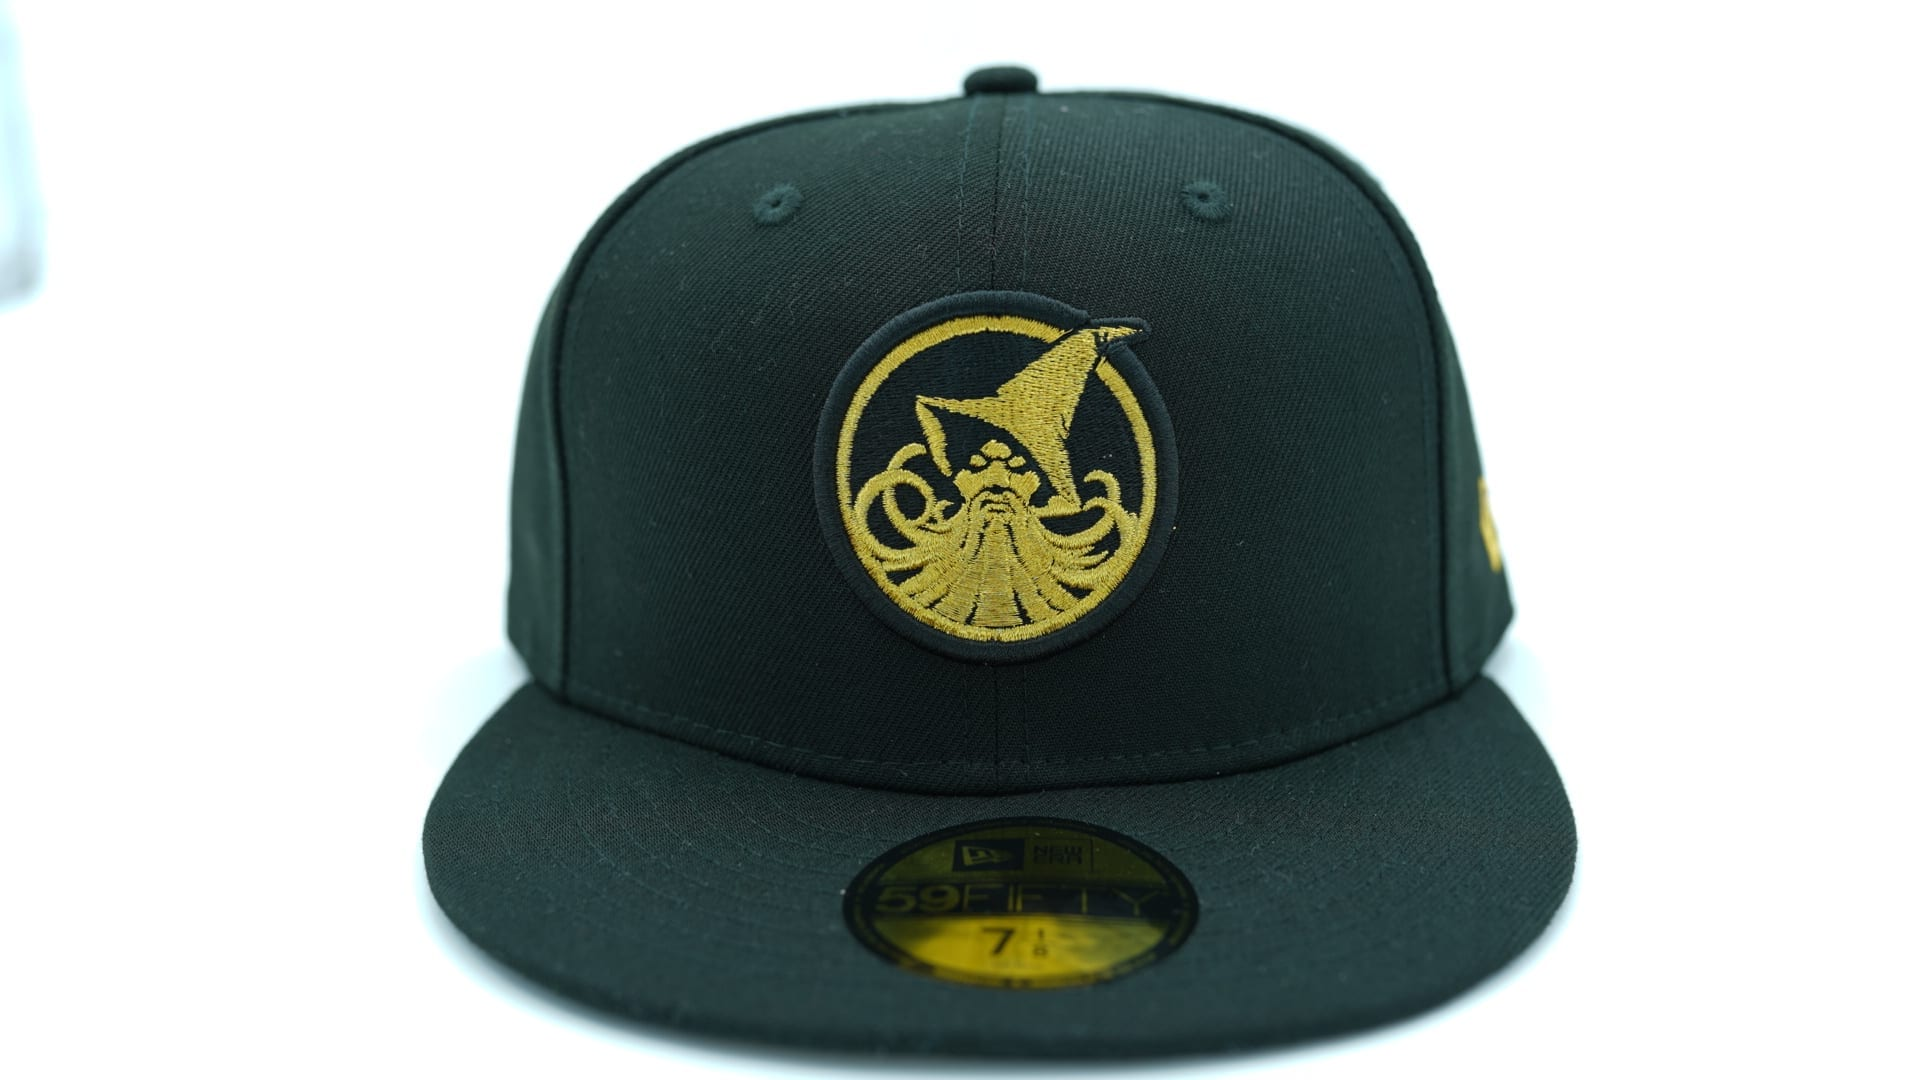 939860044ee9f9 cap | Strictly Fitteds